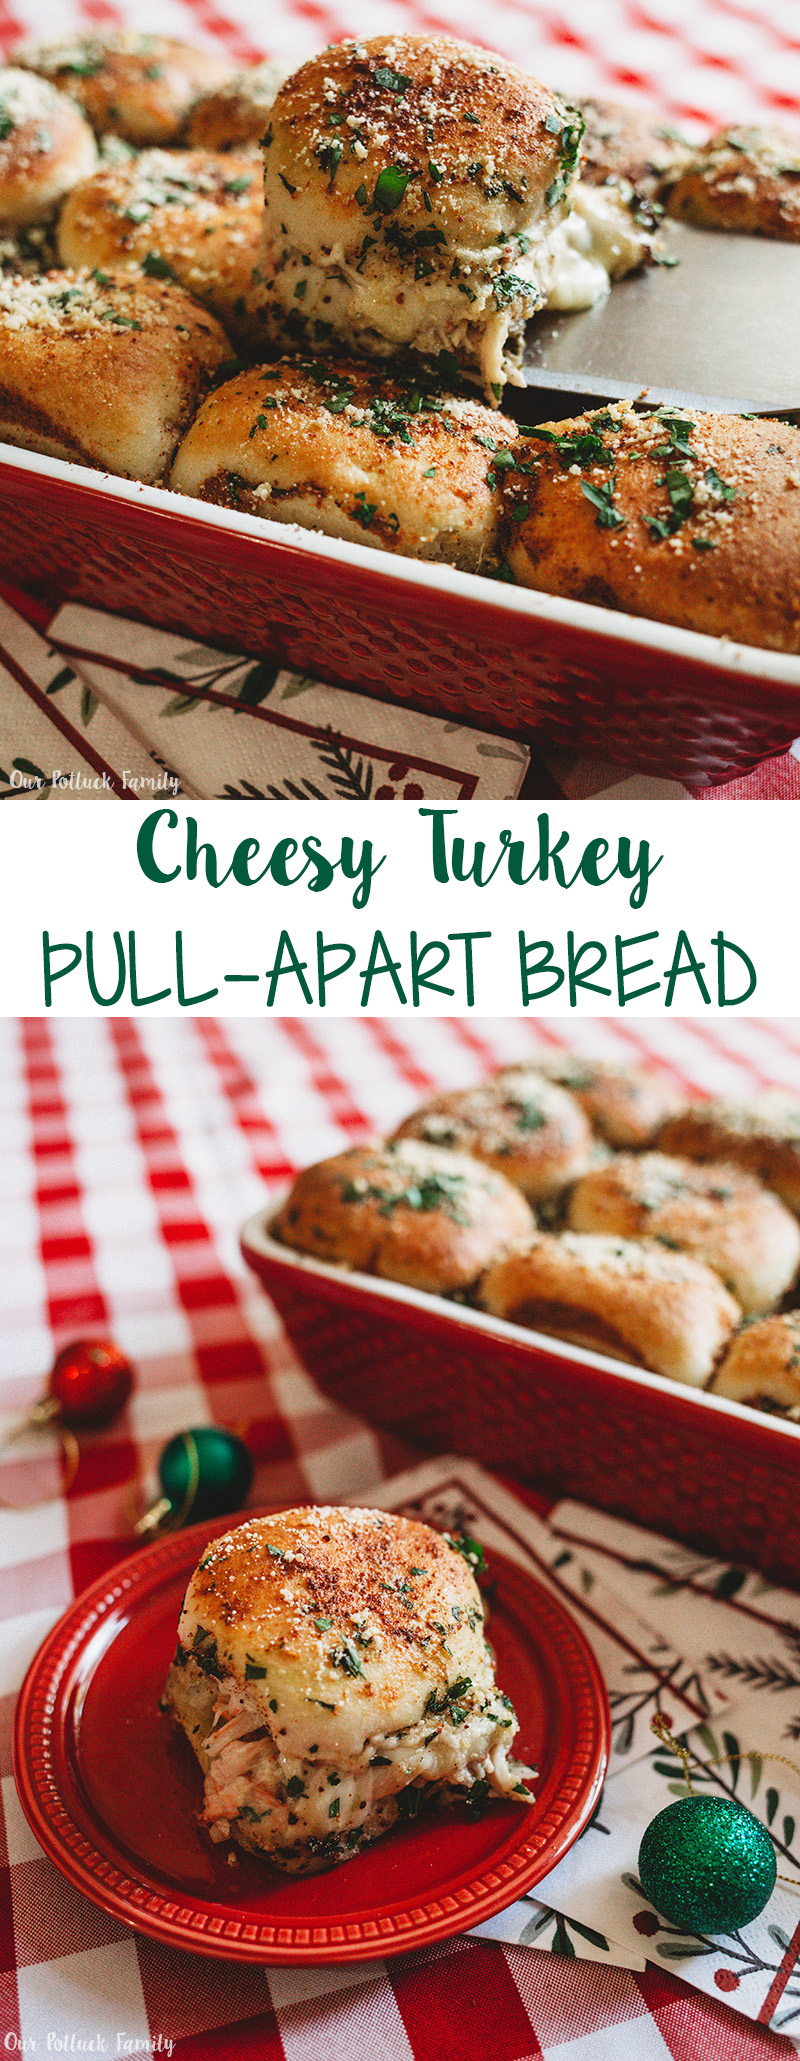 Cheesy Turkey Pull-Apart Bread